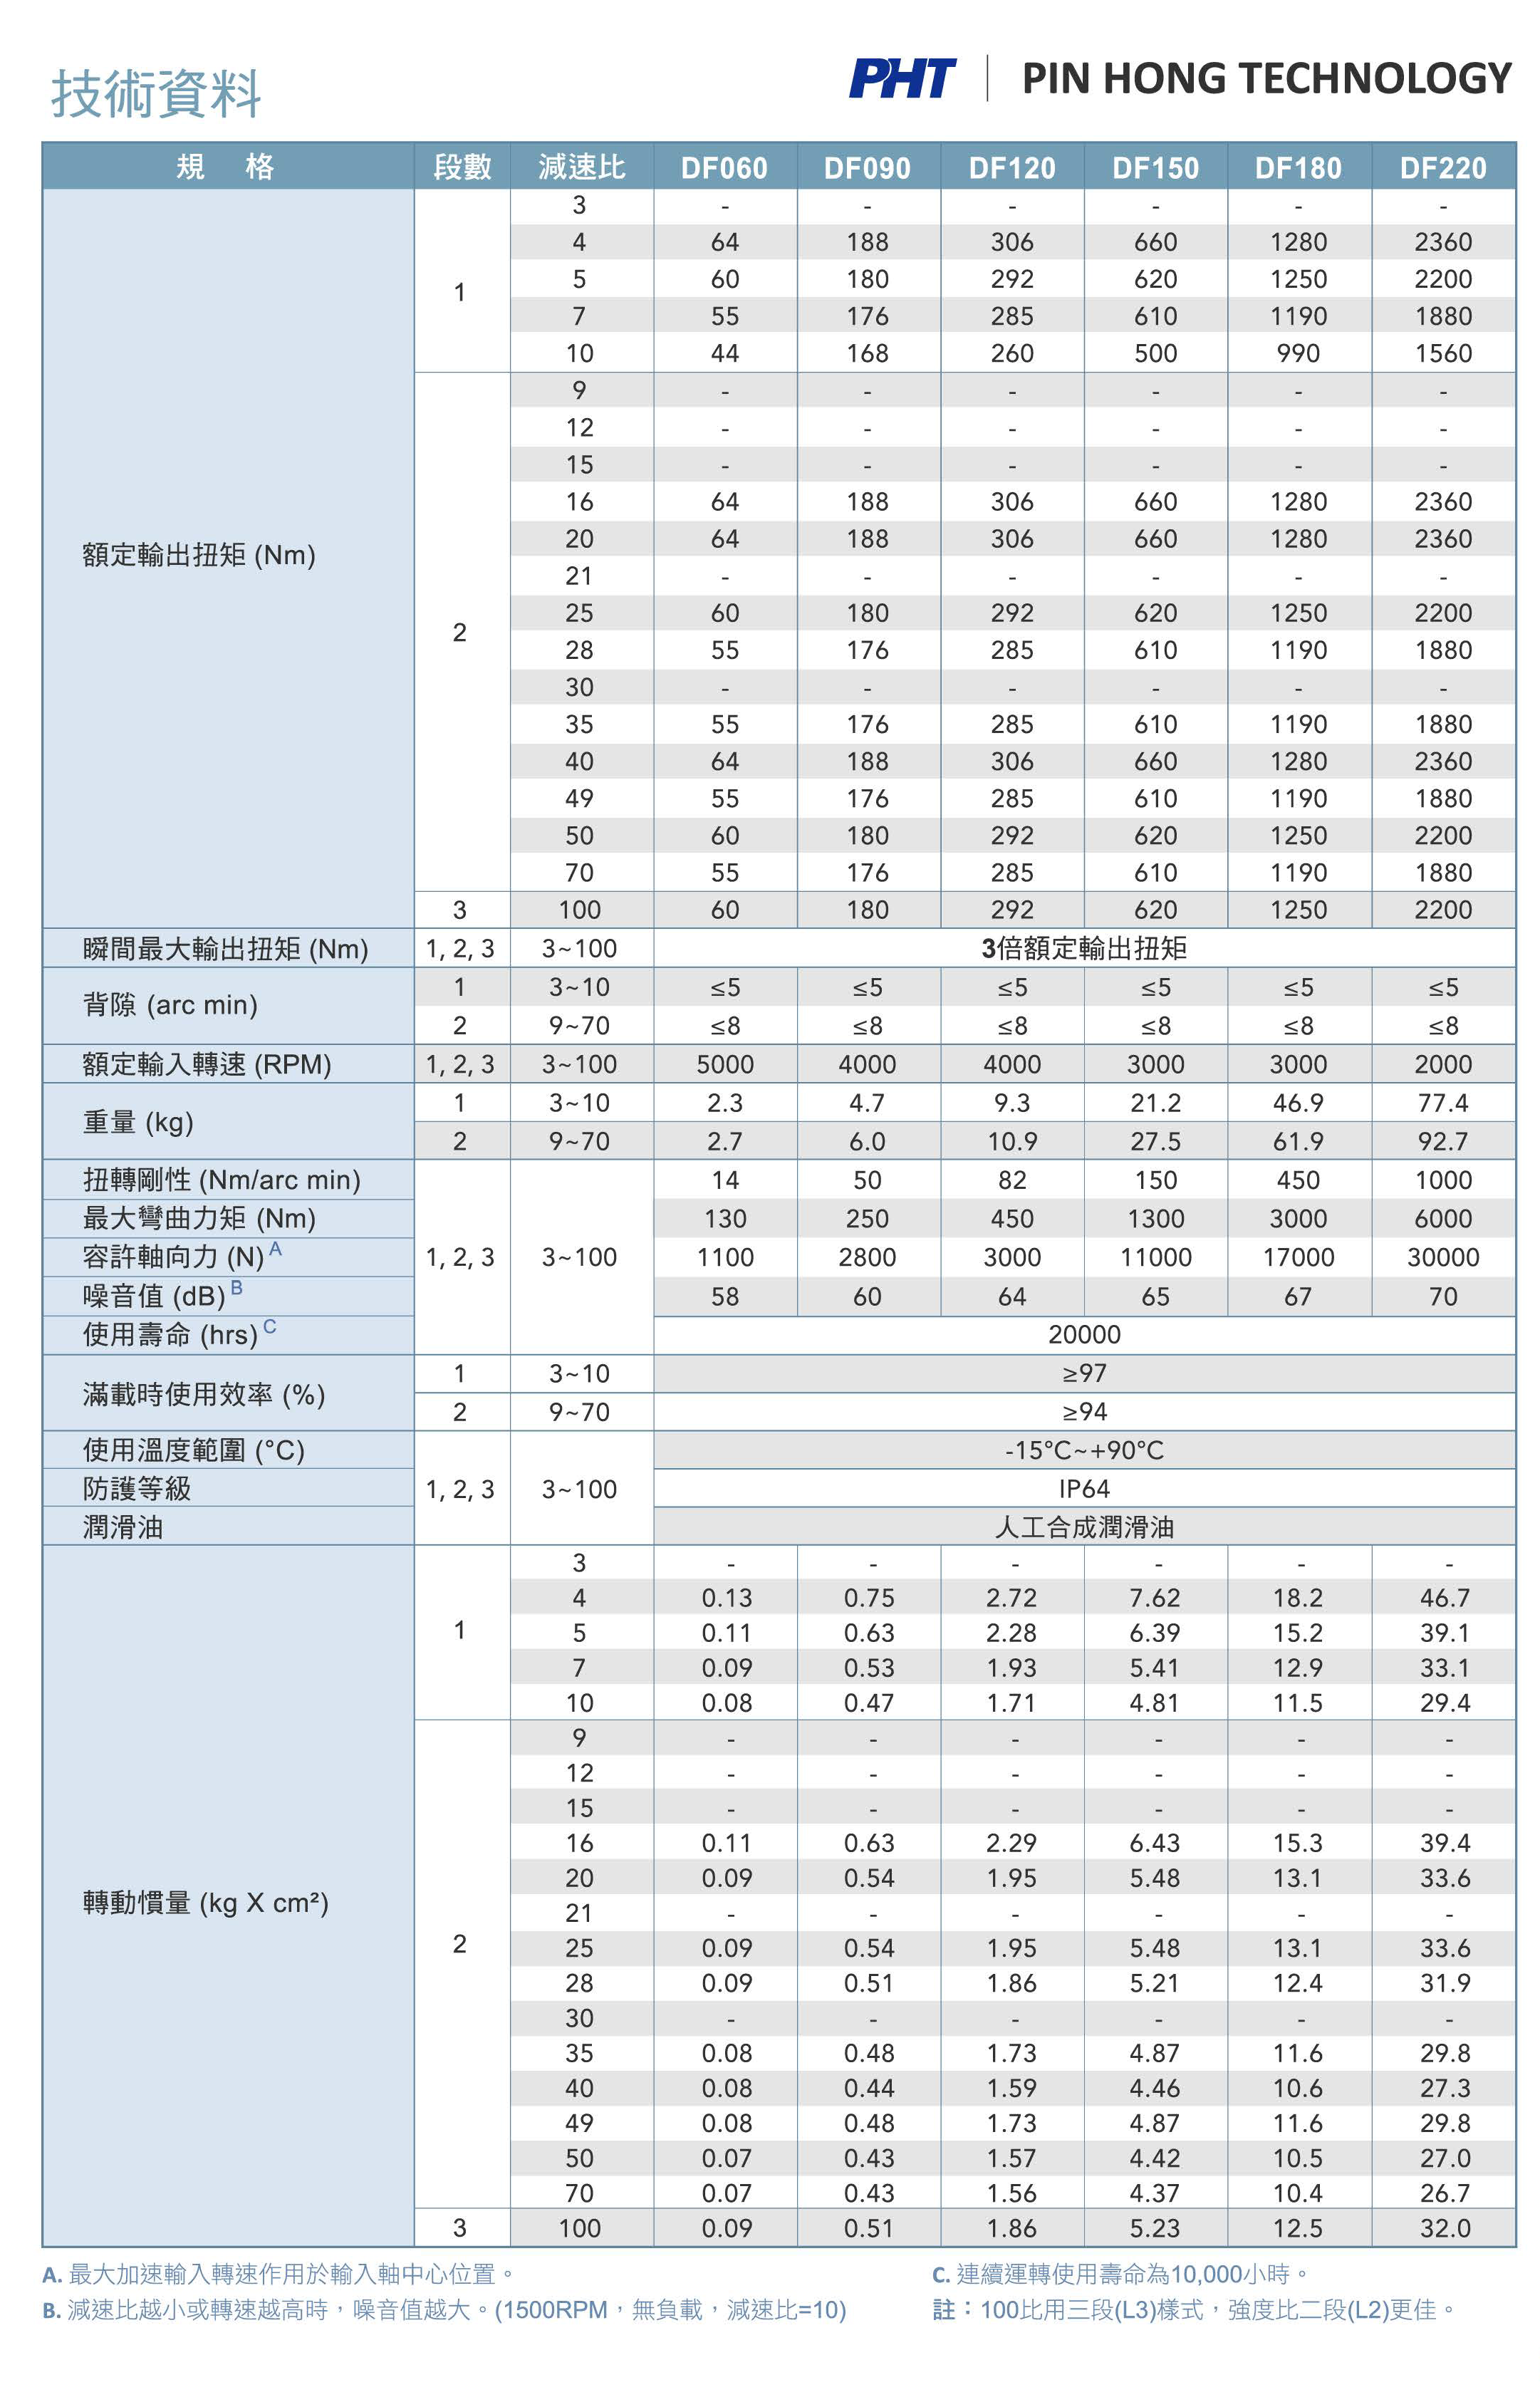 DF_Specifications